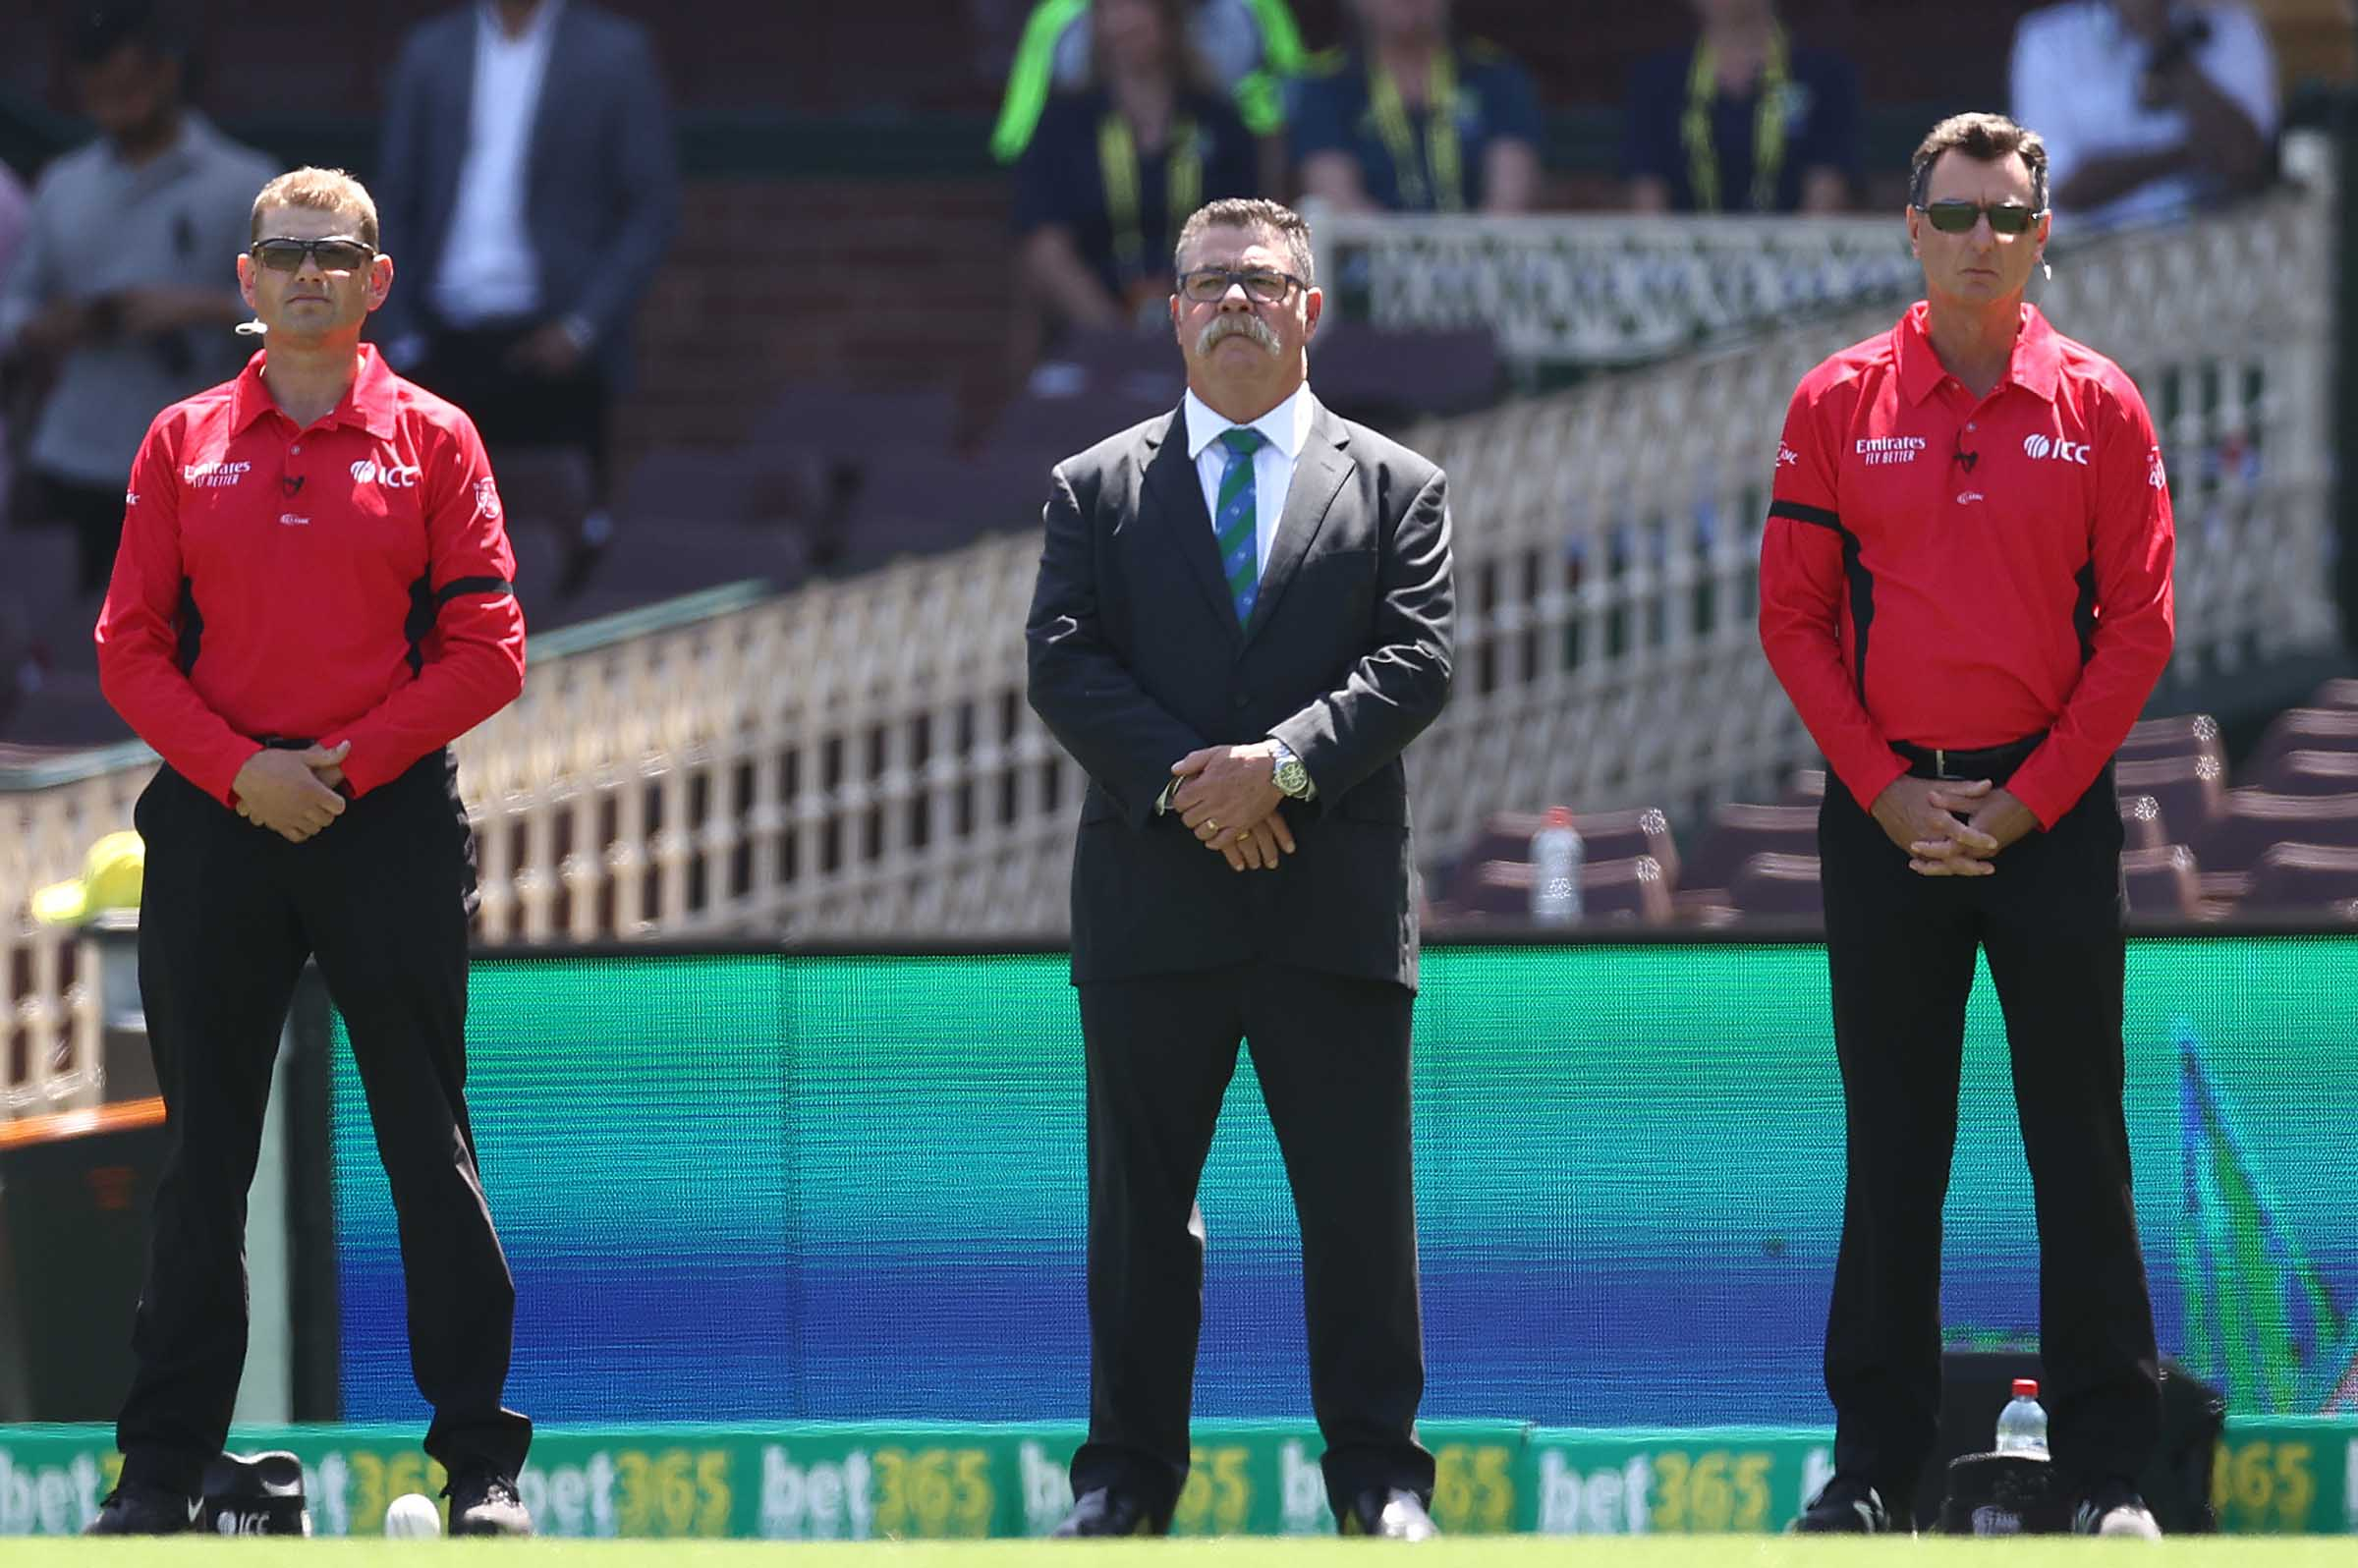 Boon in his current role of ICC match referee // Getty